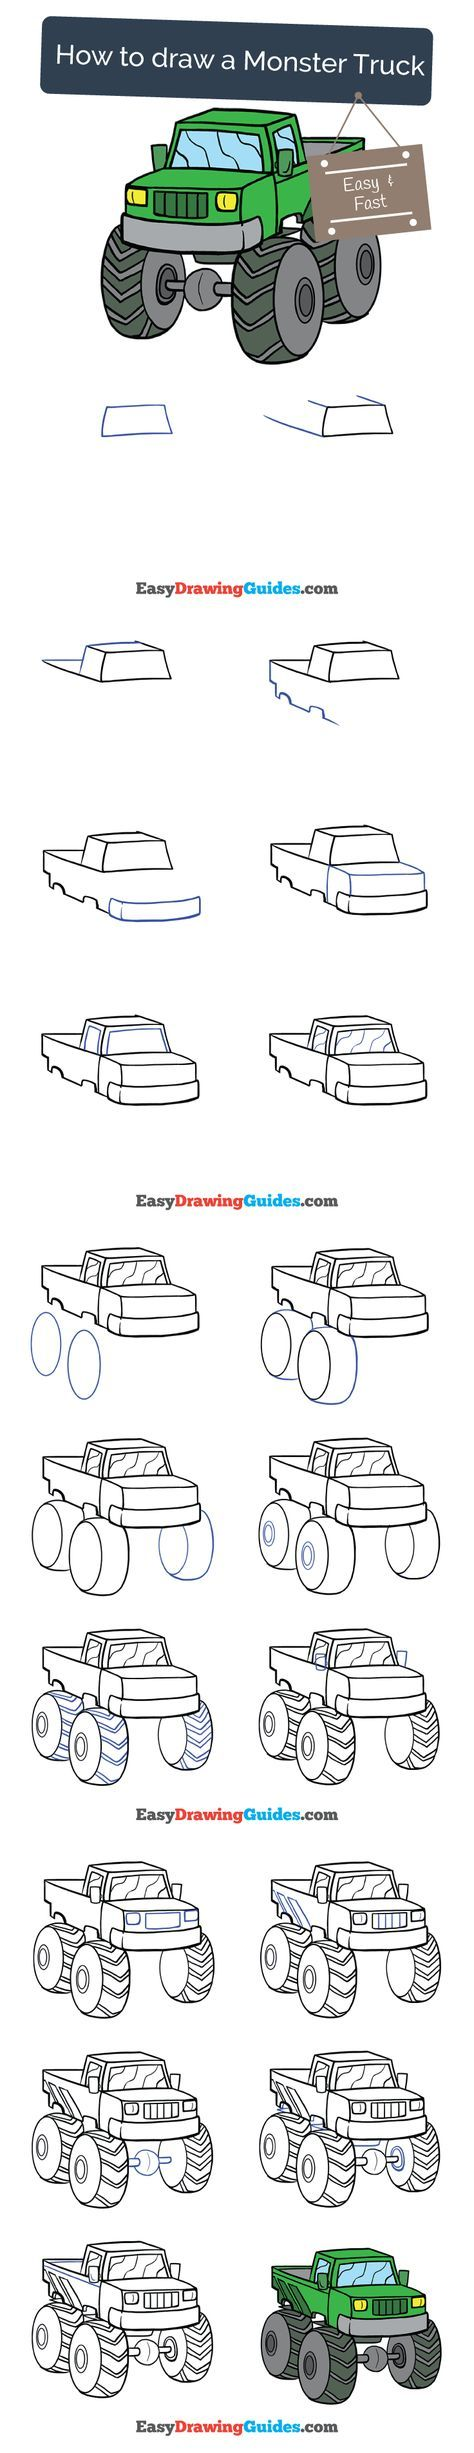 37 Super Ideas For Truck Drawing For Kids In 2020 Monster Truck Drawing Drawing Tutorials For Kids Car Drawing Kids